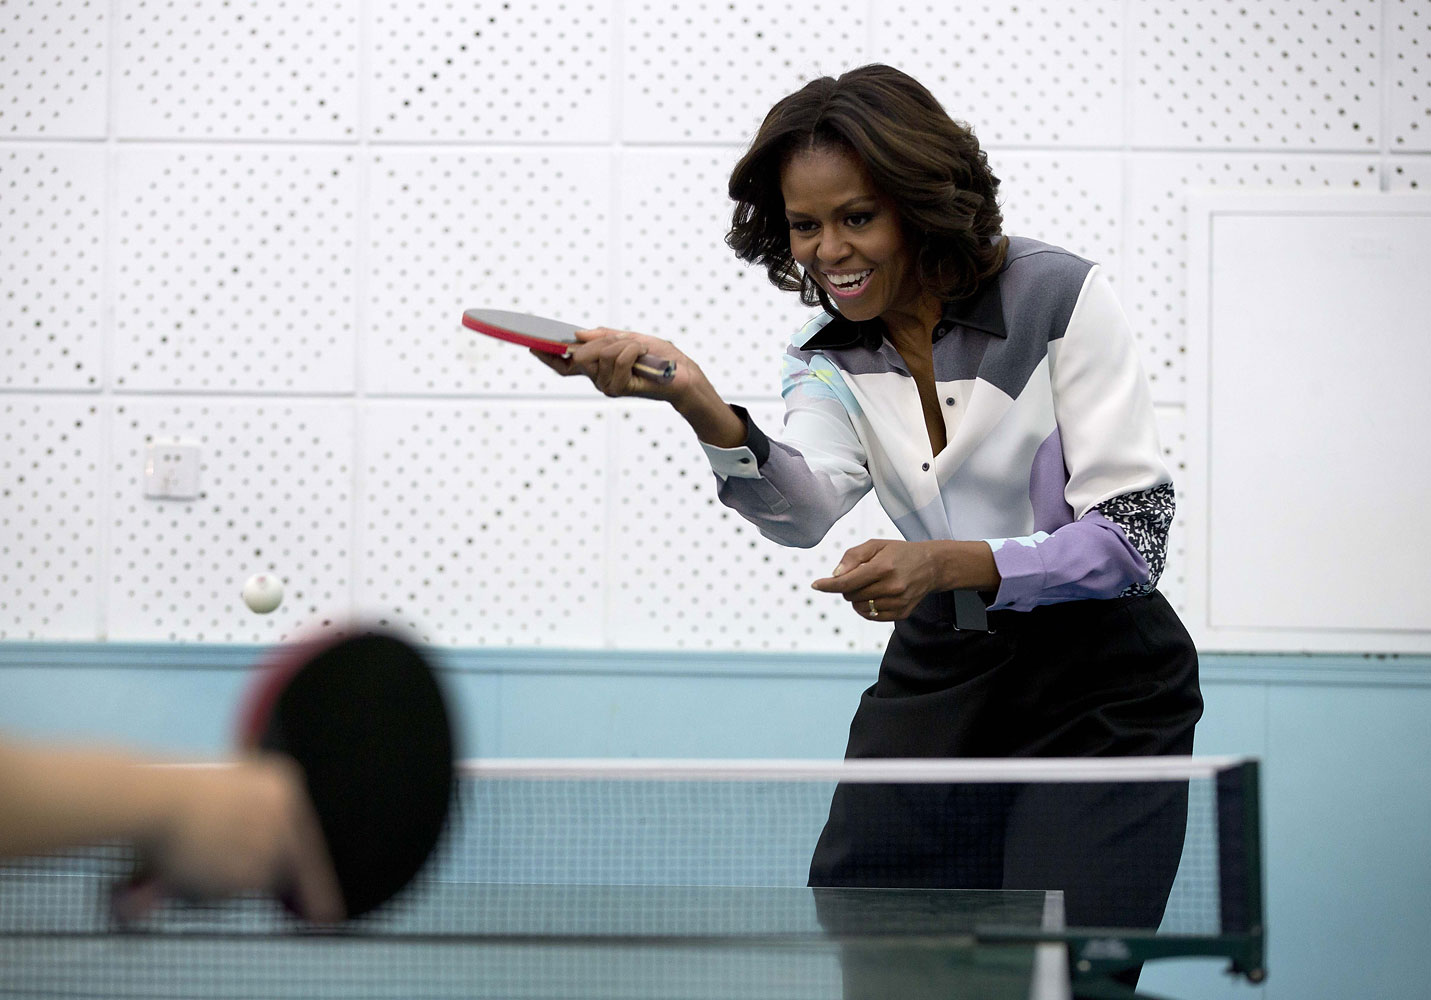 Sporting an eclectic top, Obama plays table tennis during her visit to the Beijing Normal School, a school that prepares students to attend university abroad, March 21, 2014 in Beijing.